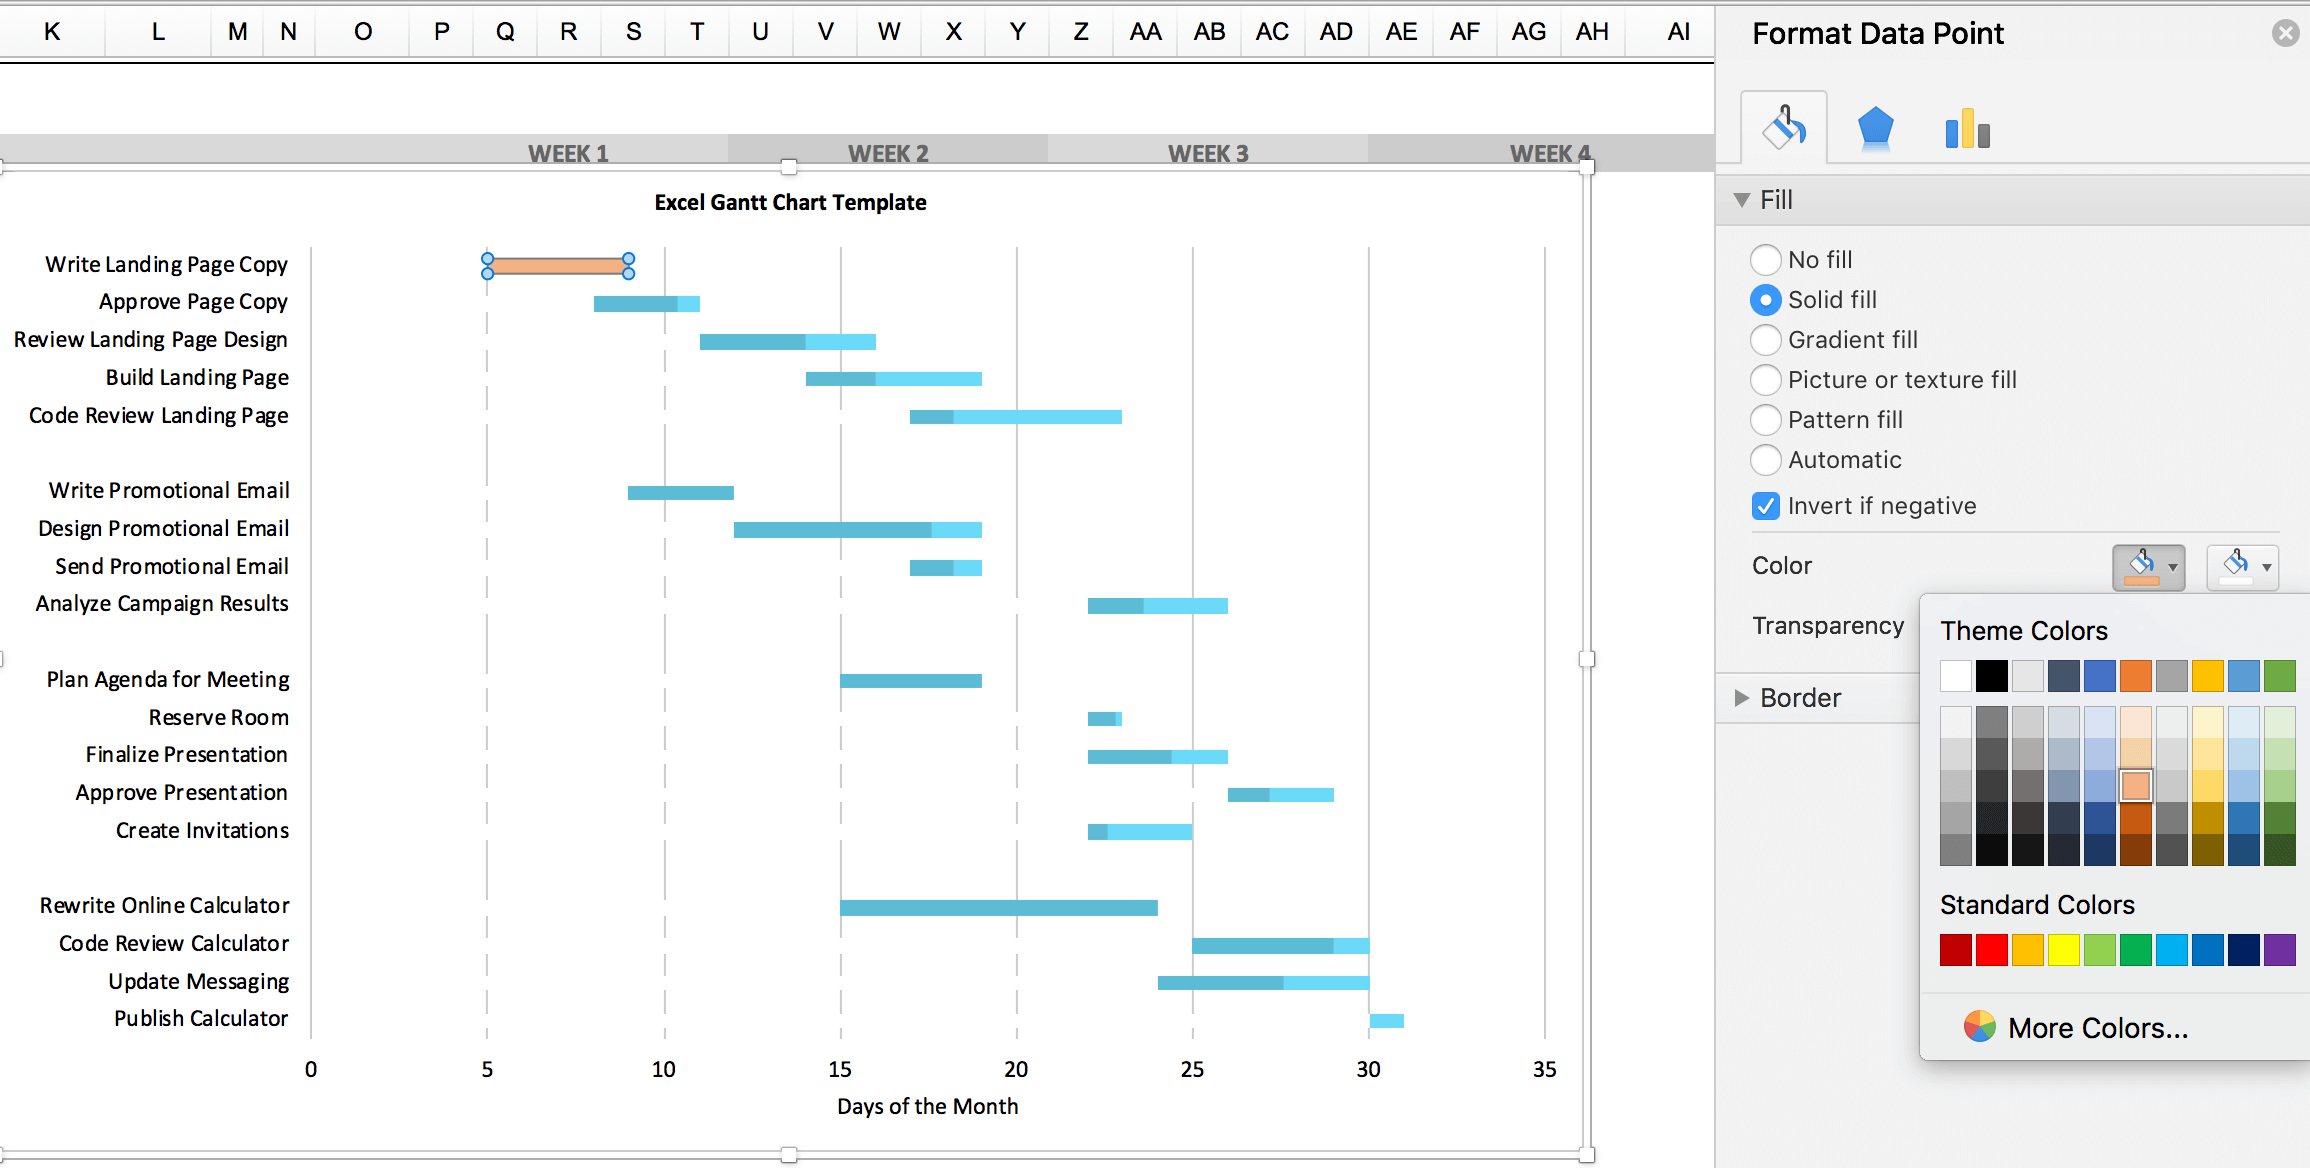 Free Gantt Chart Excel Template: Download Now   Teamgantt Within Gantt Chart Timeline Template Excel